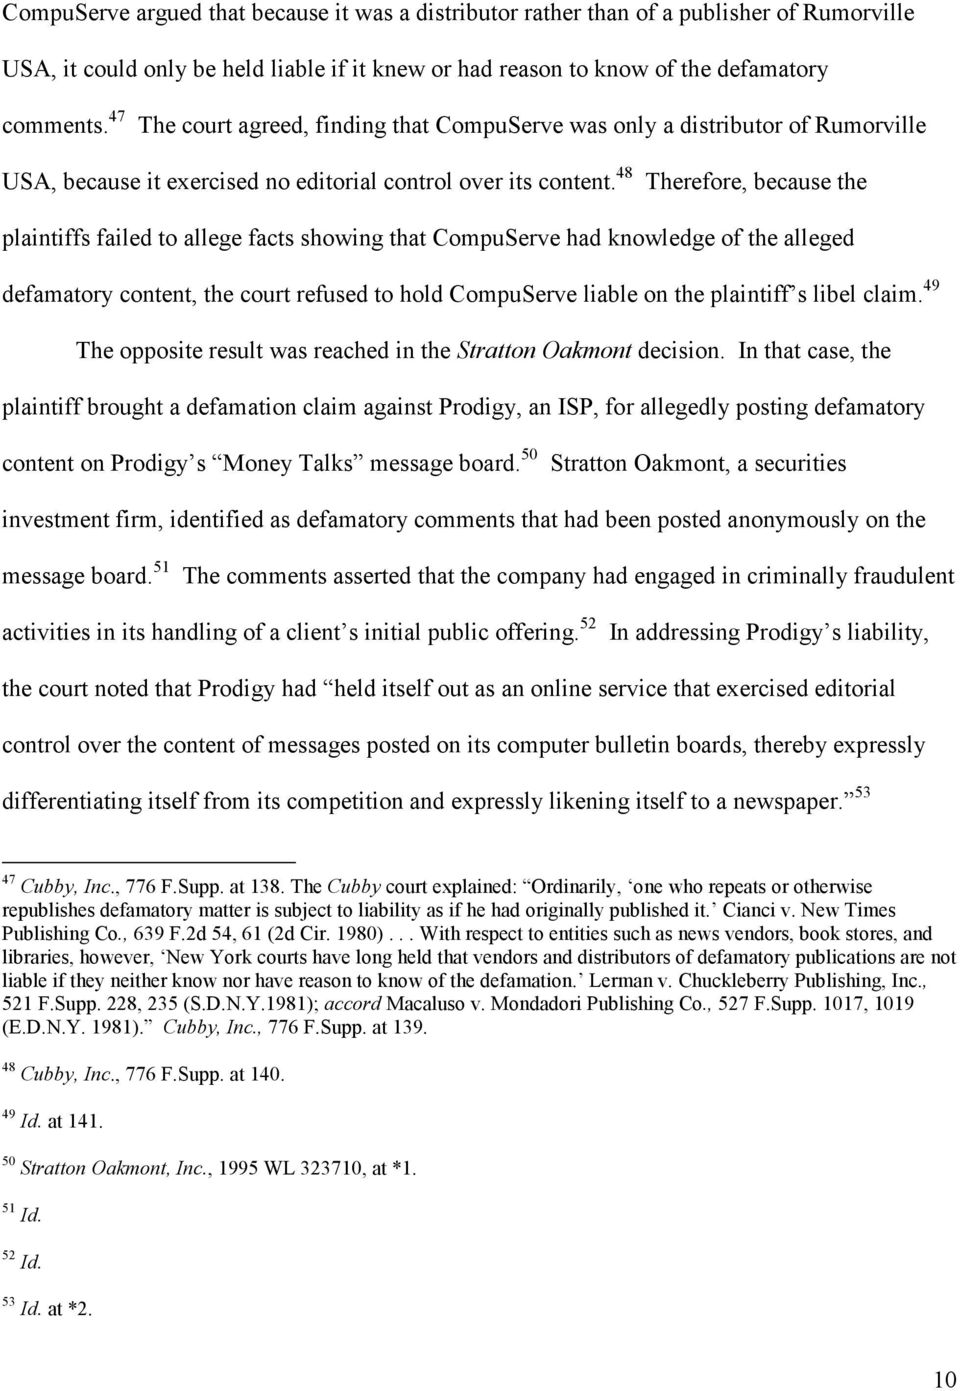 48 Therefore, because the plaintiffs failed to allege facts showing that CompuServe had knowledge of the alleged defamatory content, the court refused to hold CompuServe liable on the plaintiff s